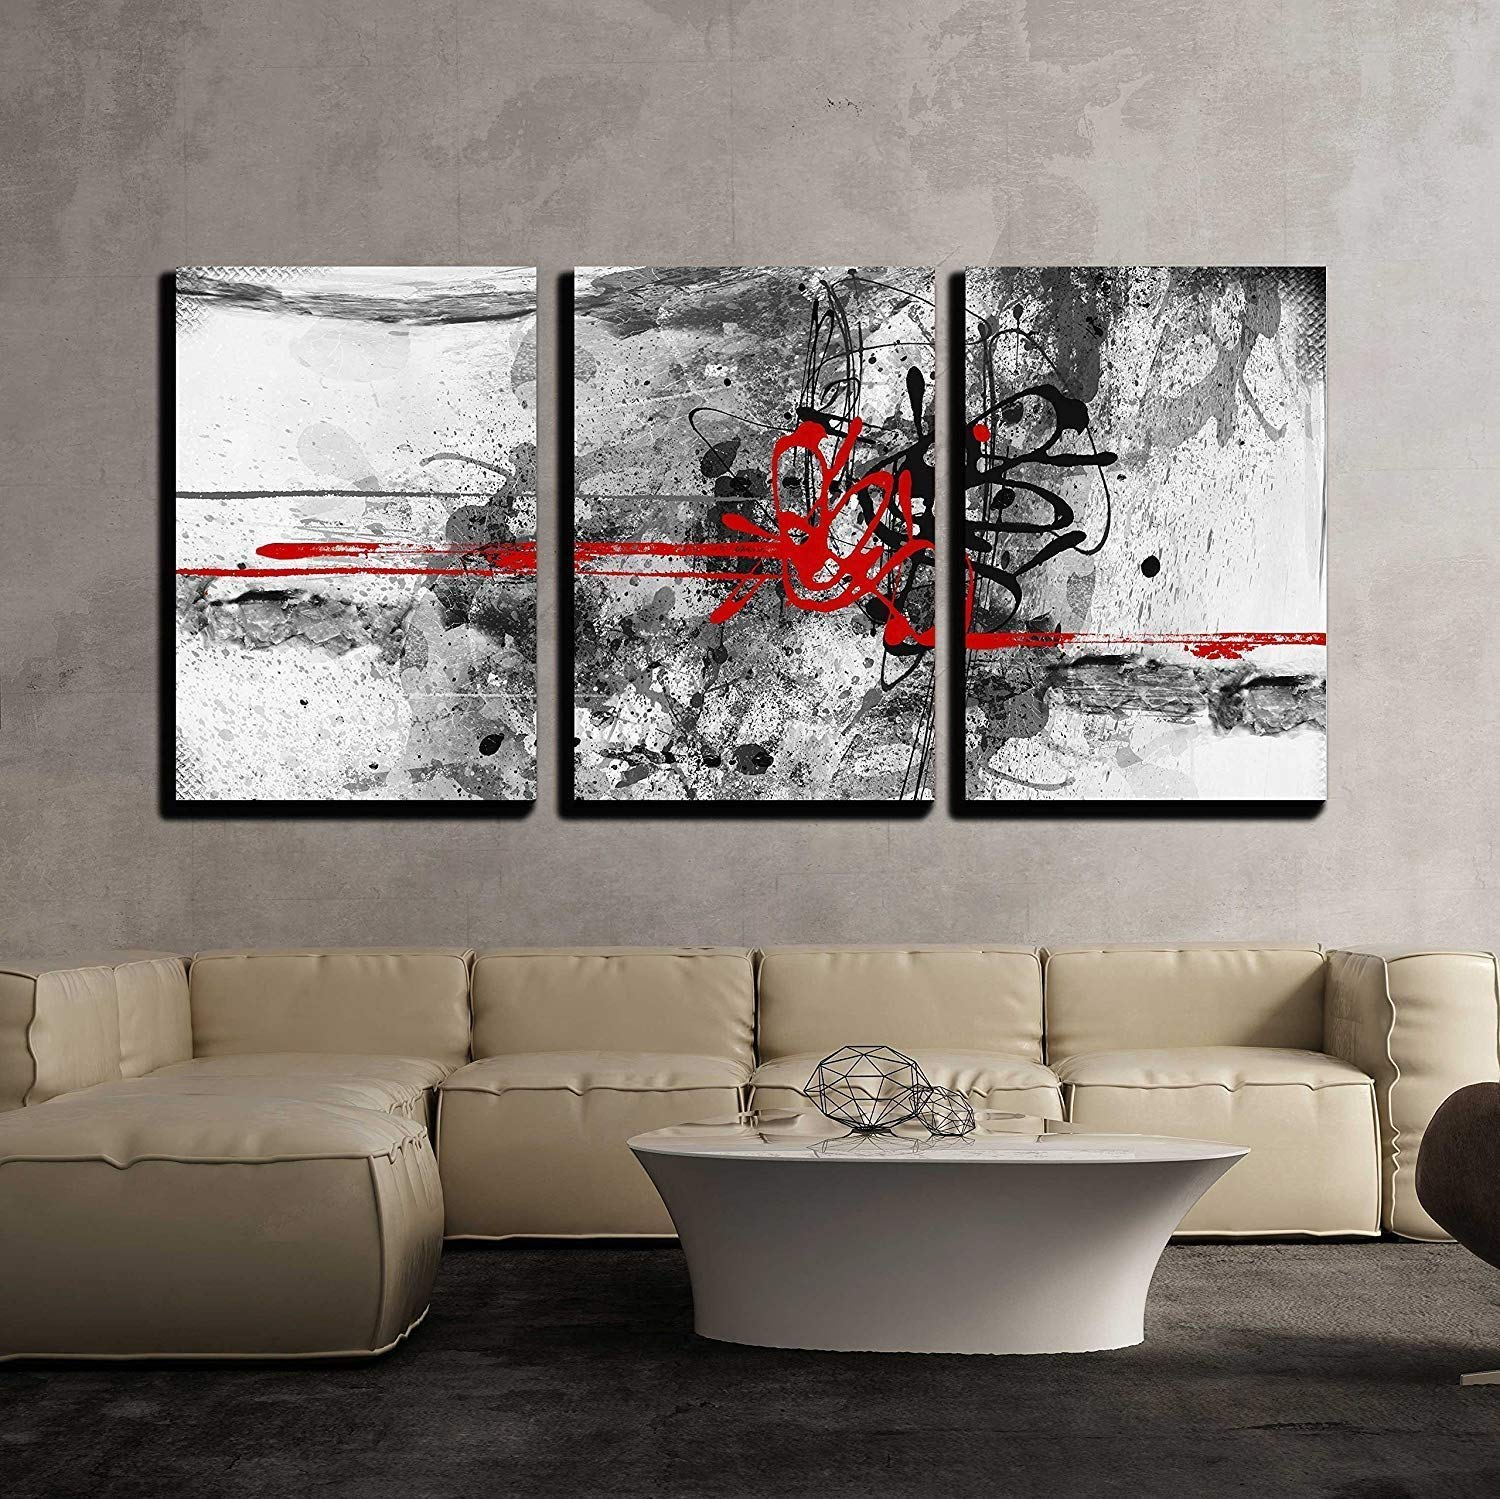 wall26 - 3 Piece Canvas Wall Art - Highly Detailed Grunge Abstract Textured Collage with Space for Your Text - Modern Home Decor Stretched and Framed Ready to Hang - 24''x36''x3 Panels